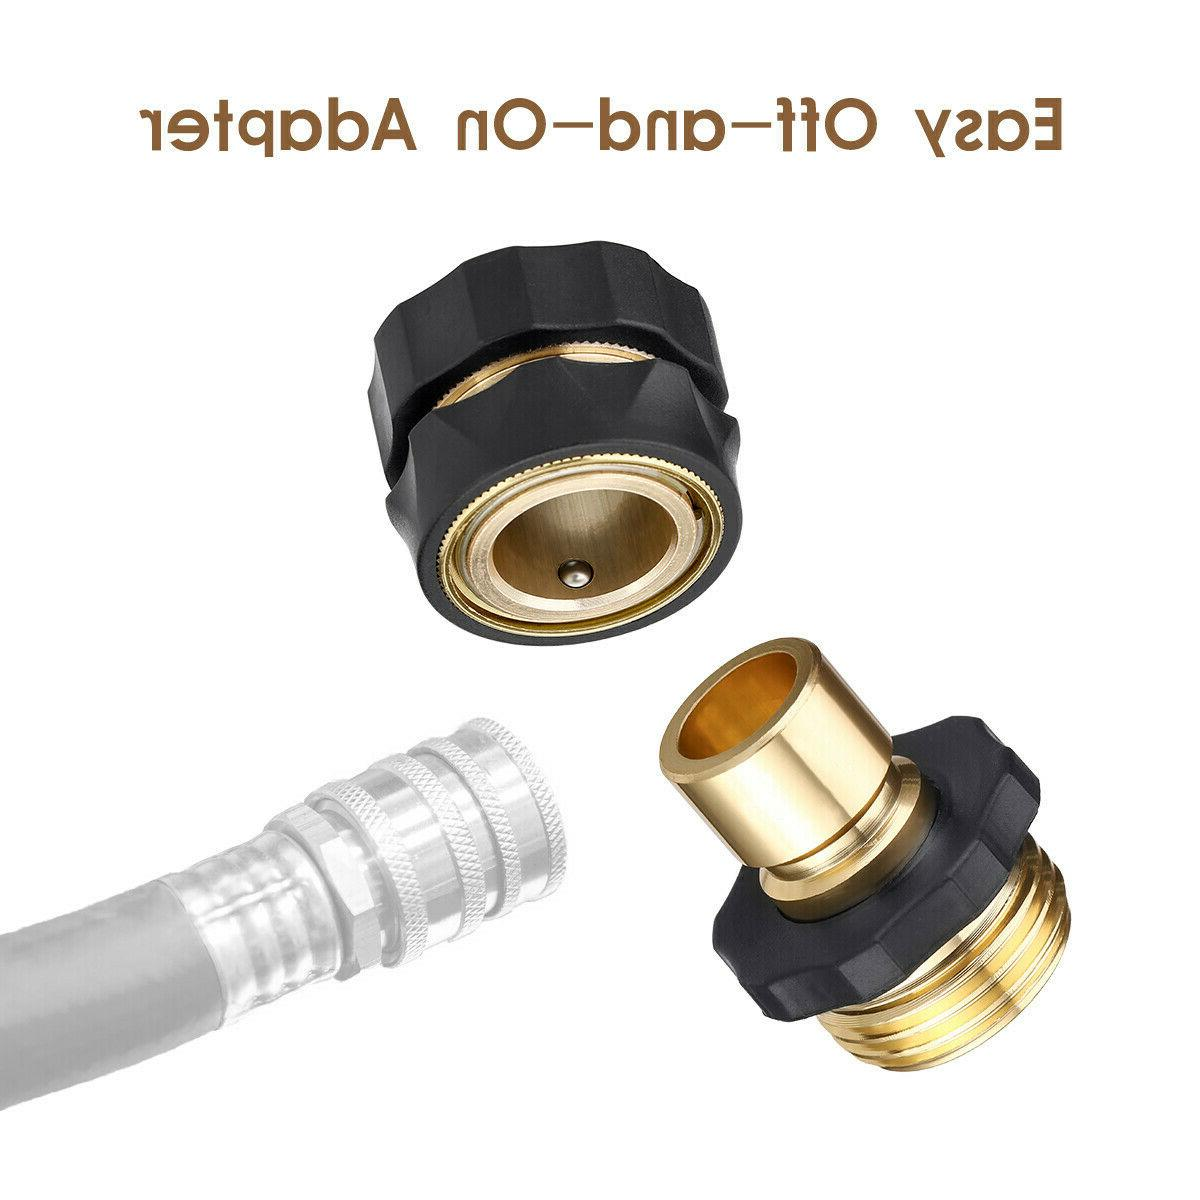 4/8 Garden Quick Connect Water Fit Female Connector